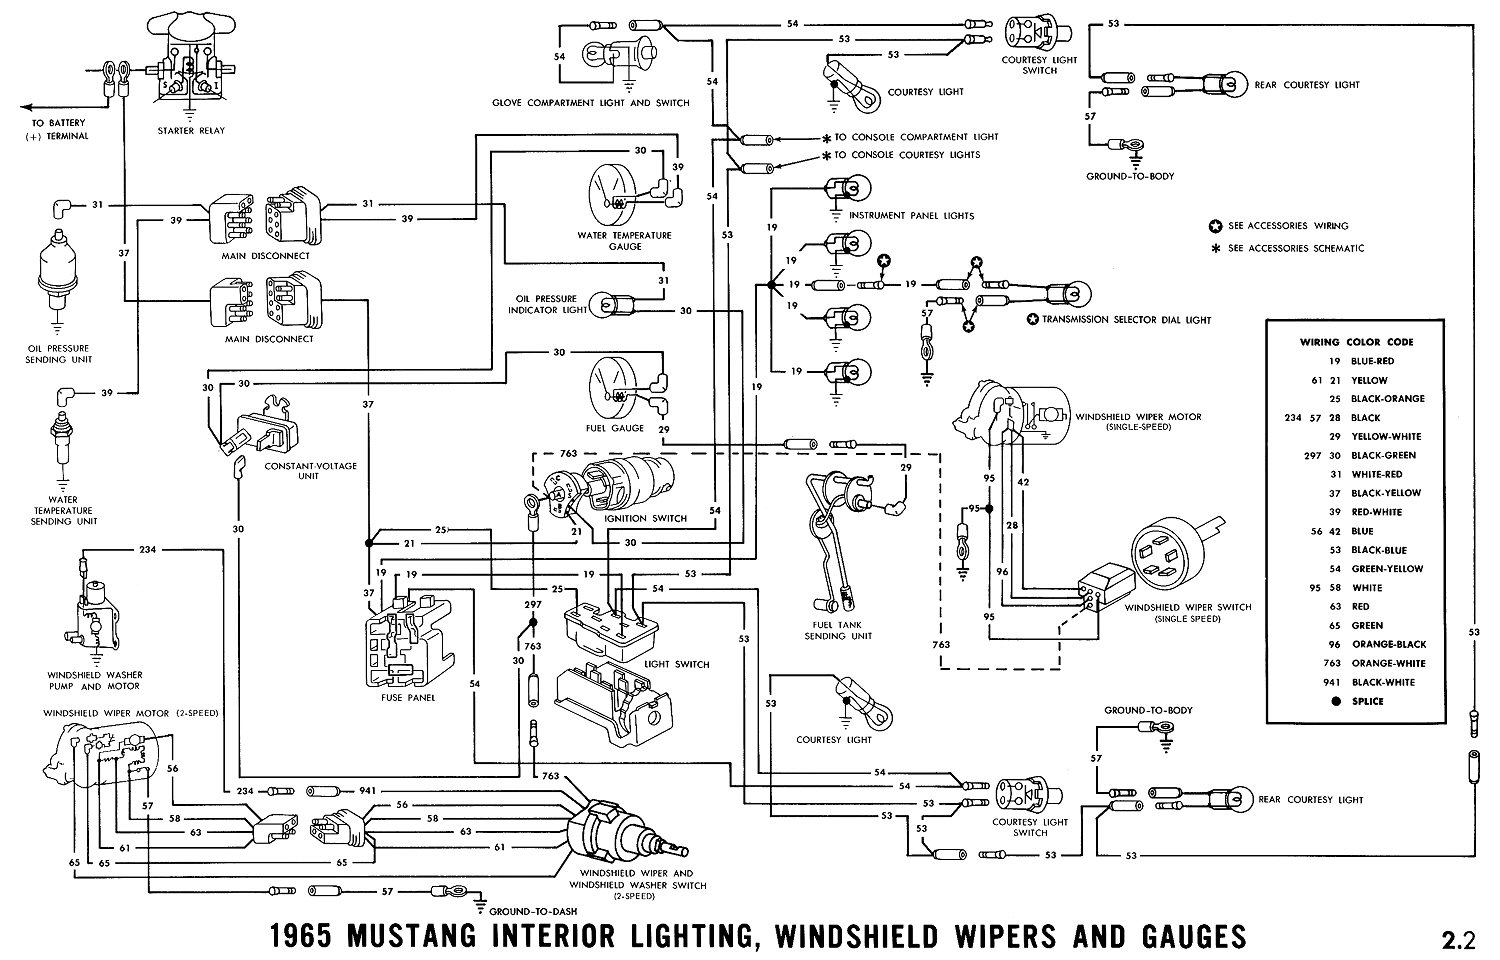 hight resolution of 1968 cadillac dash wiring diagram detailed schematics diagram rh lelandlutheran com mercury trim switch wiring diagram